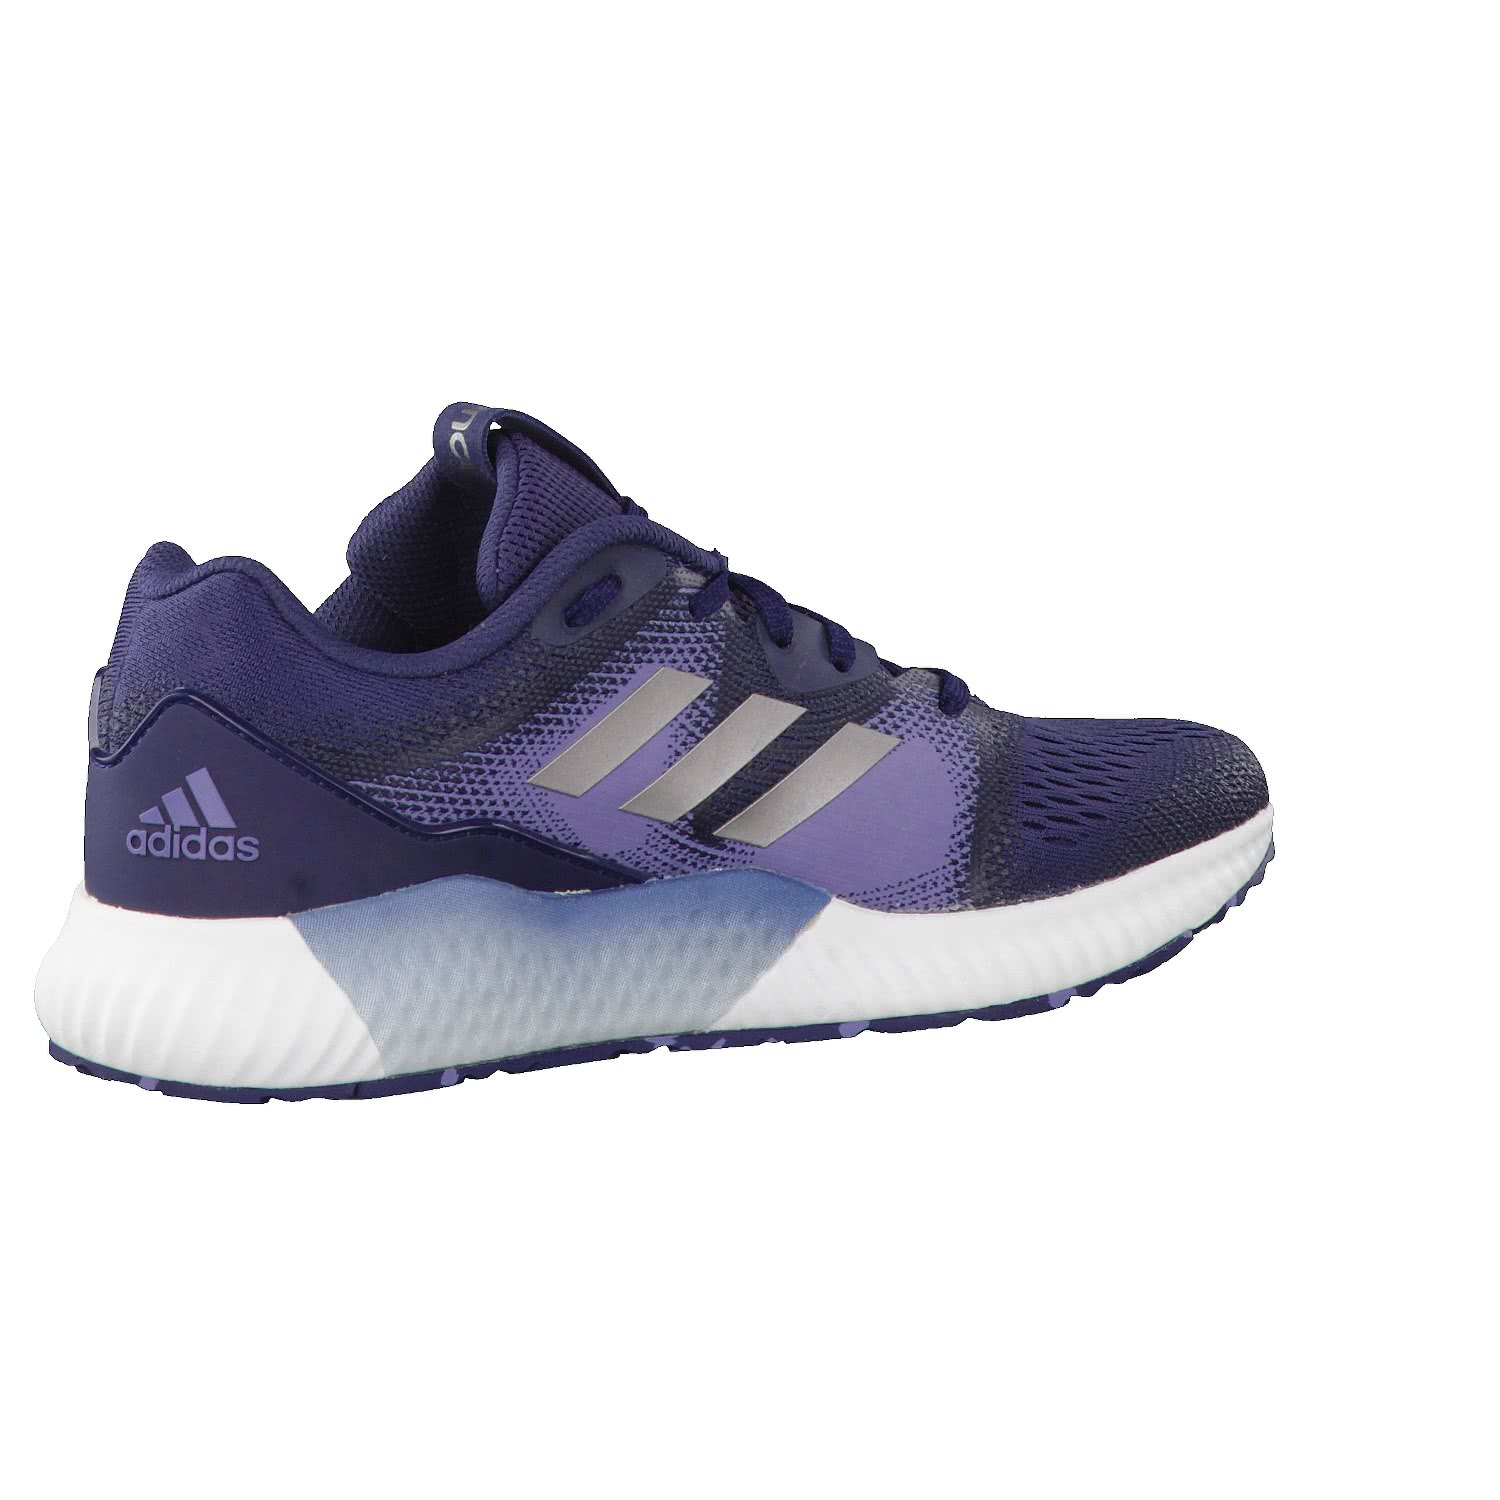 cheap for discount 0b5c1 066b8 adidas Damen Laufschuhe Aerobounce ST W BW0320 42 Trace BlueTech Silver  Met.Super Purple  42